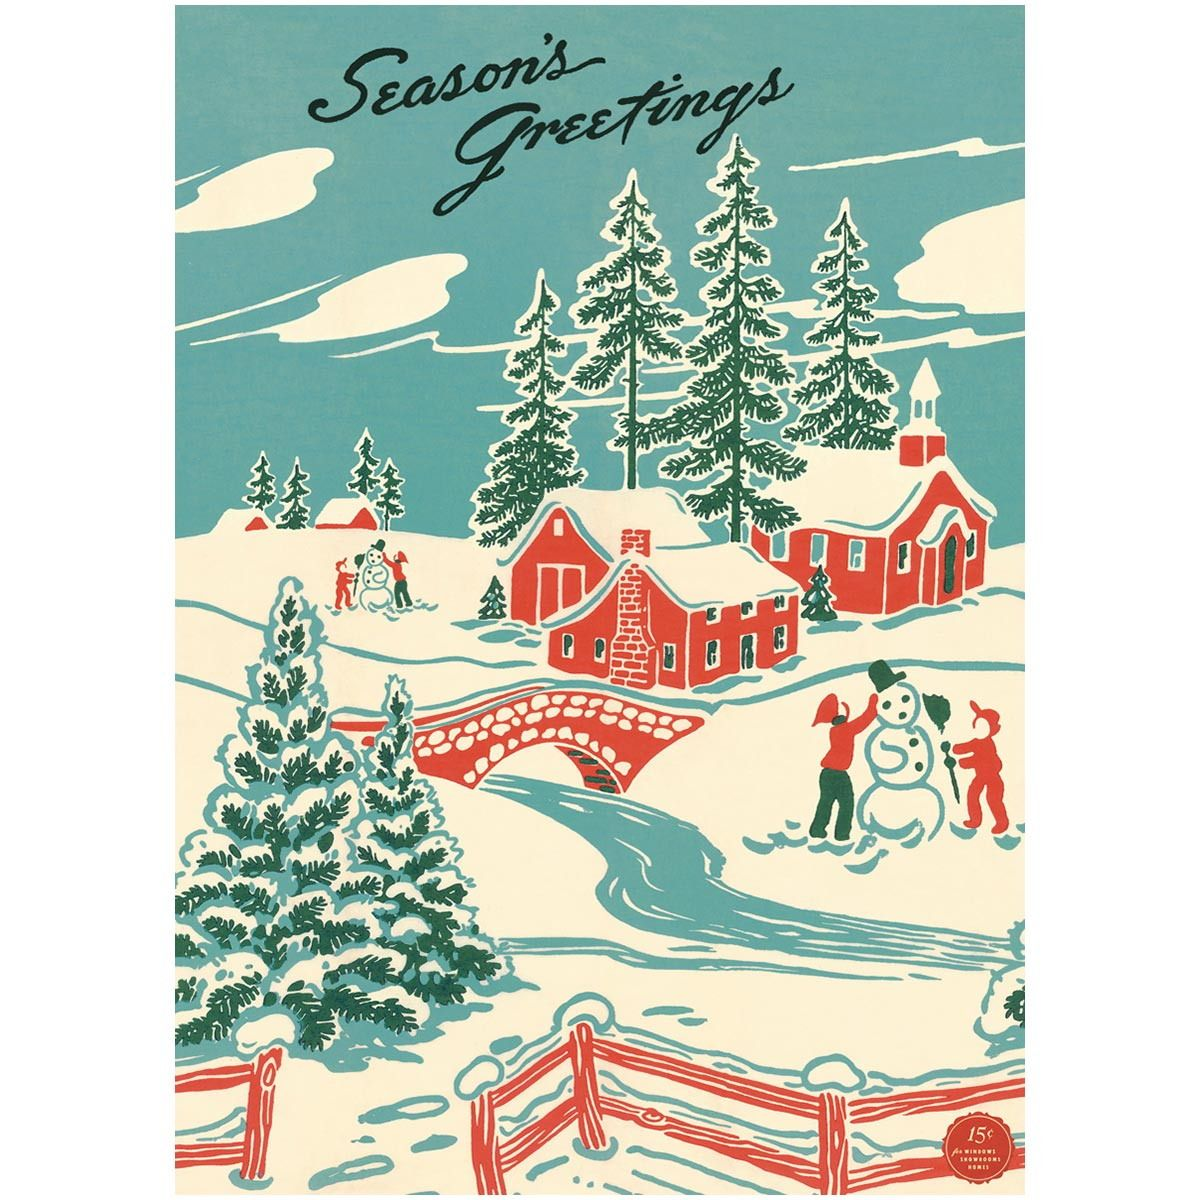 Seasons Greetings Winter Wonderland Poster -   18 holiday Gifts poster ideas